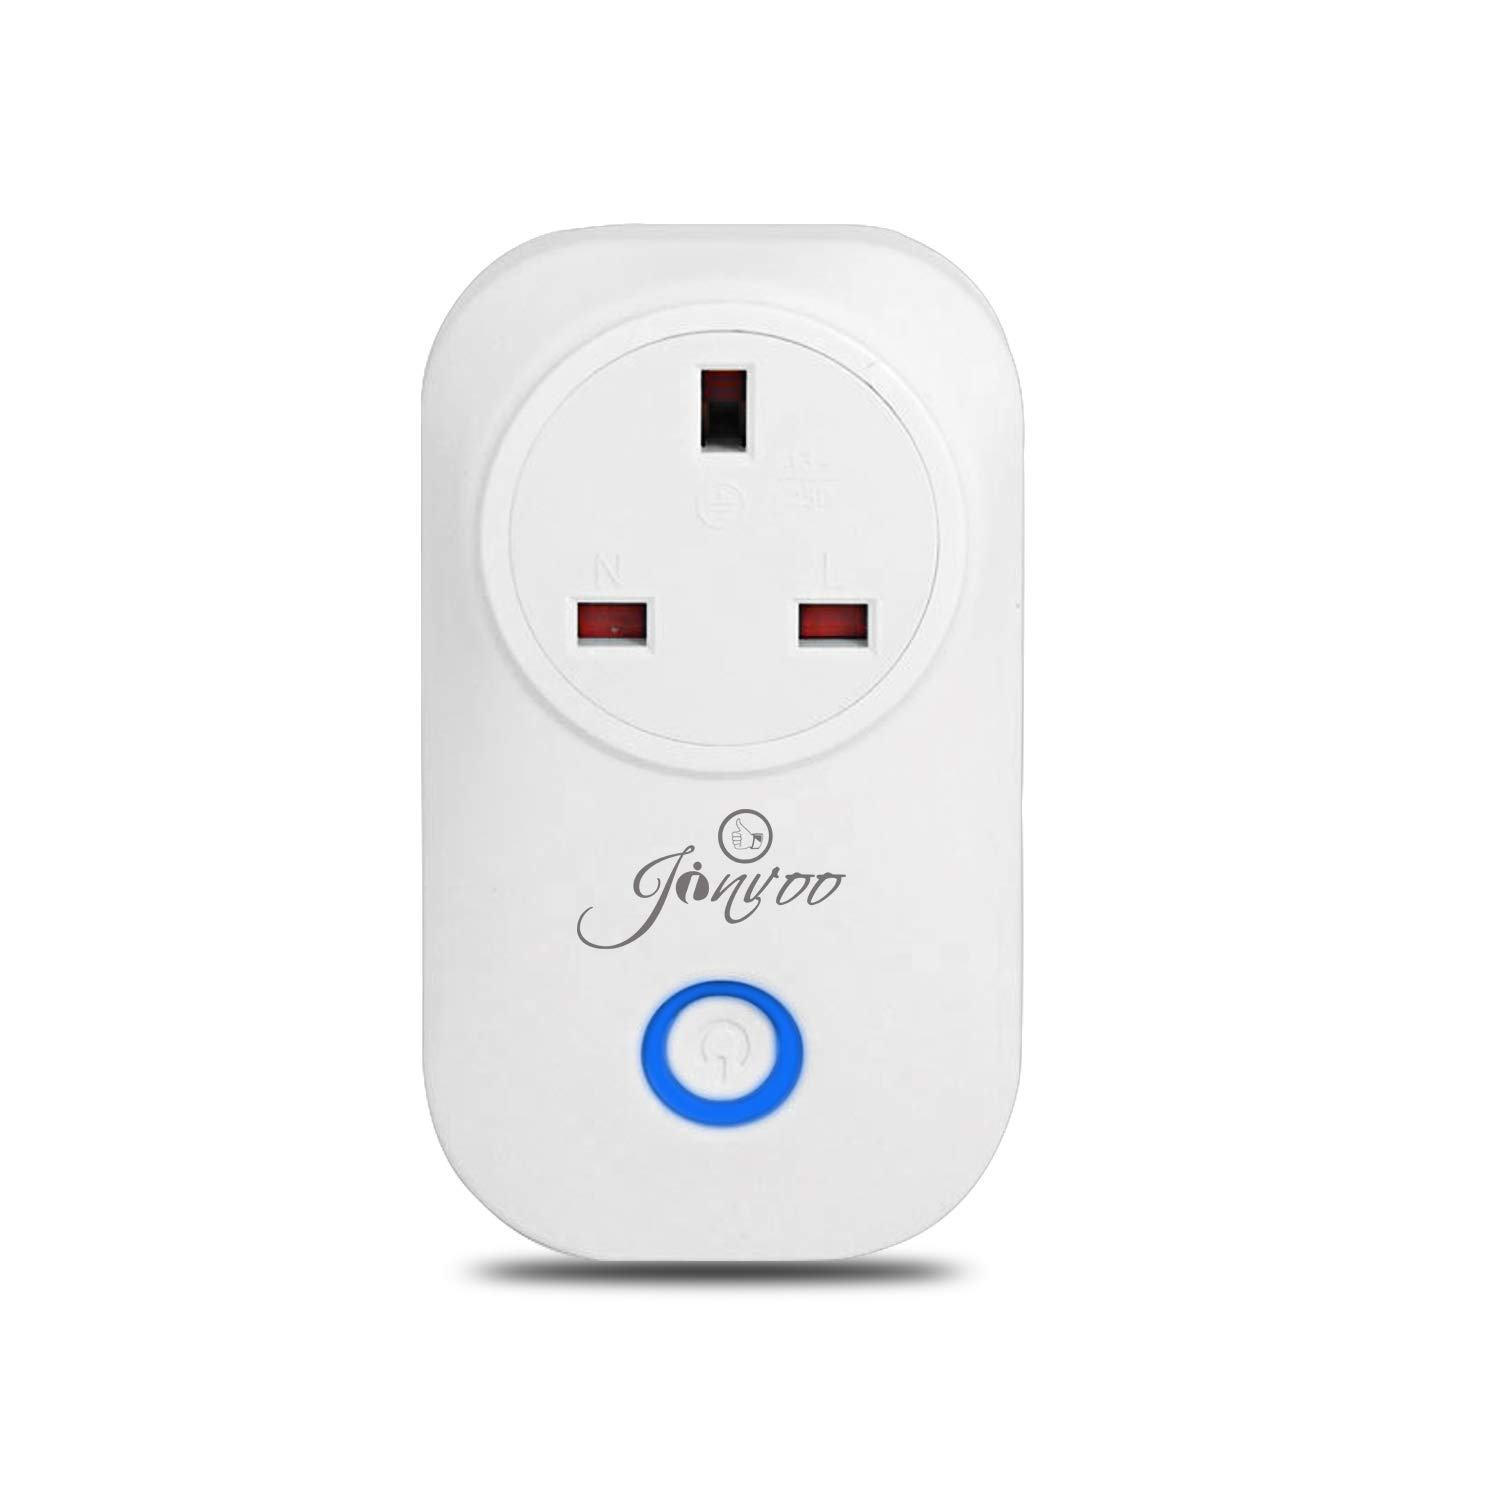 Jinvoo (2 Packs) Smart WiFi Power Plug UK Works with Smartphone App Control for iOS and Android, Timing Function, Anywhere Remote Control Switch and at Any time… Anywhere Remote Control Switch and at Any time...